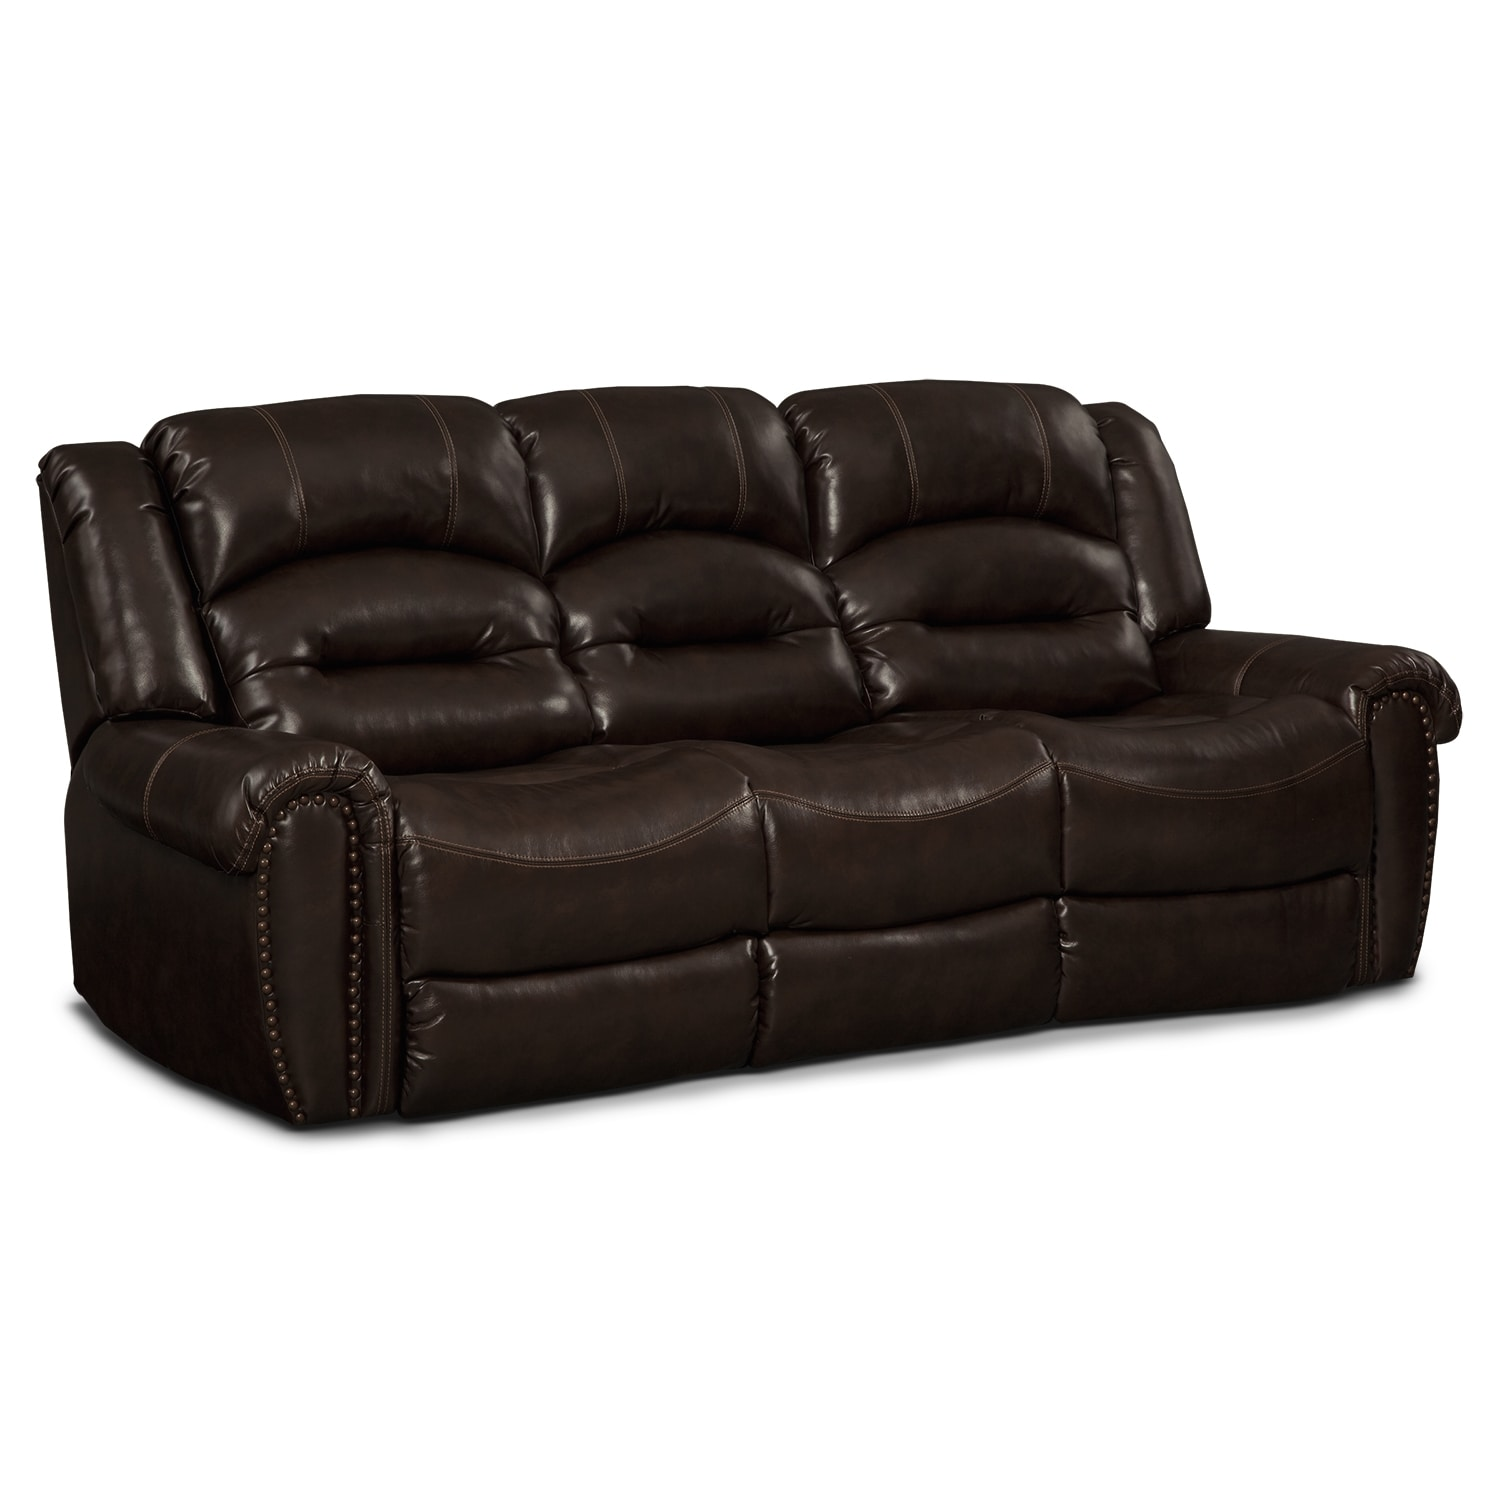 Galveston leather dual reclining sofa value city furniture Leather reclining sofa loveseat